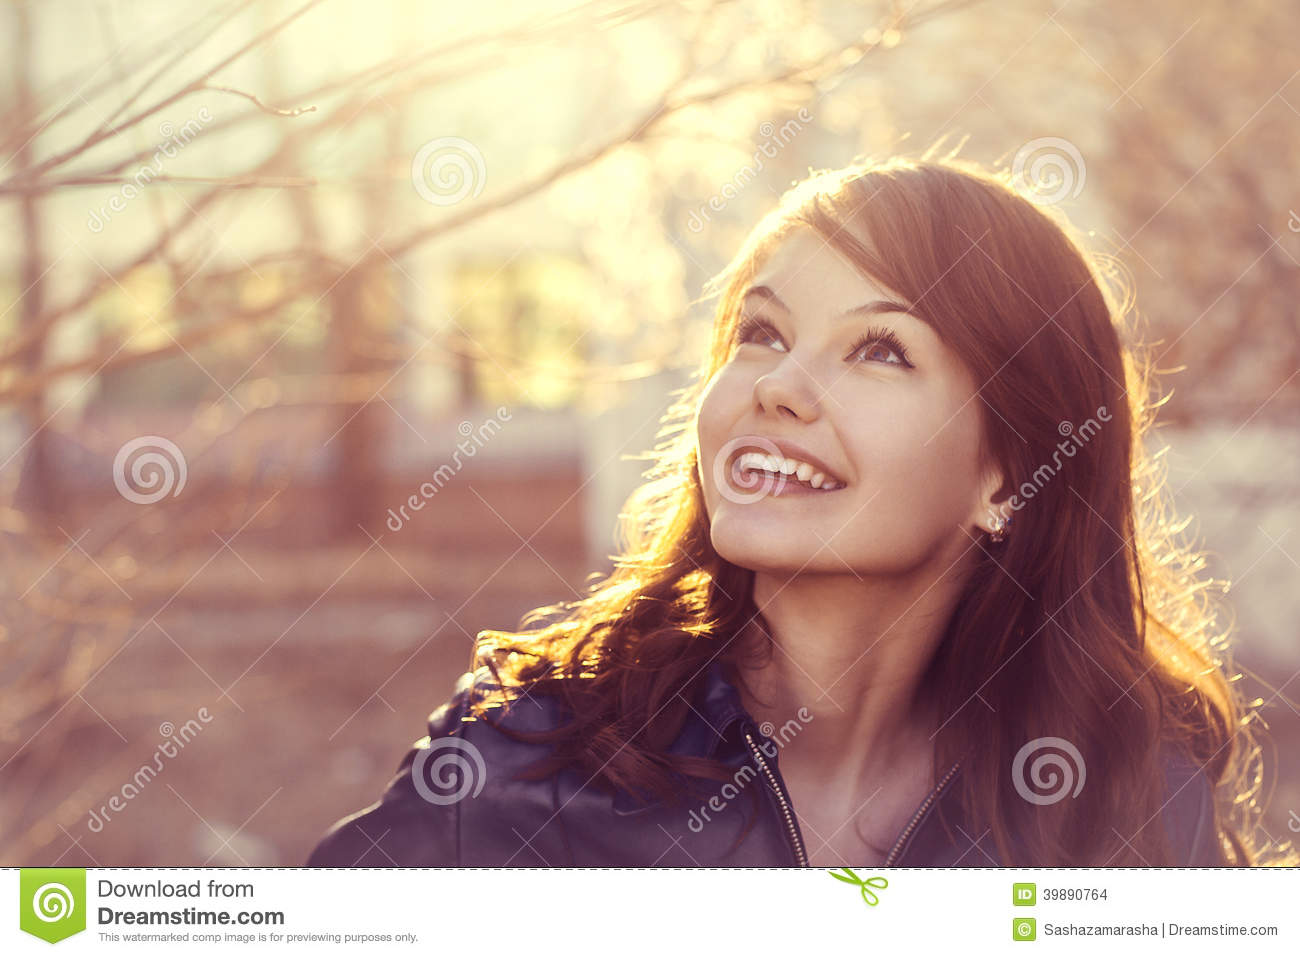 happy-young-smile-woman-sunlight-city-portrait-bright-outdoor-soft-vintage-photoshoot-39890764.jpg